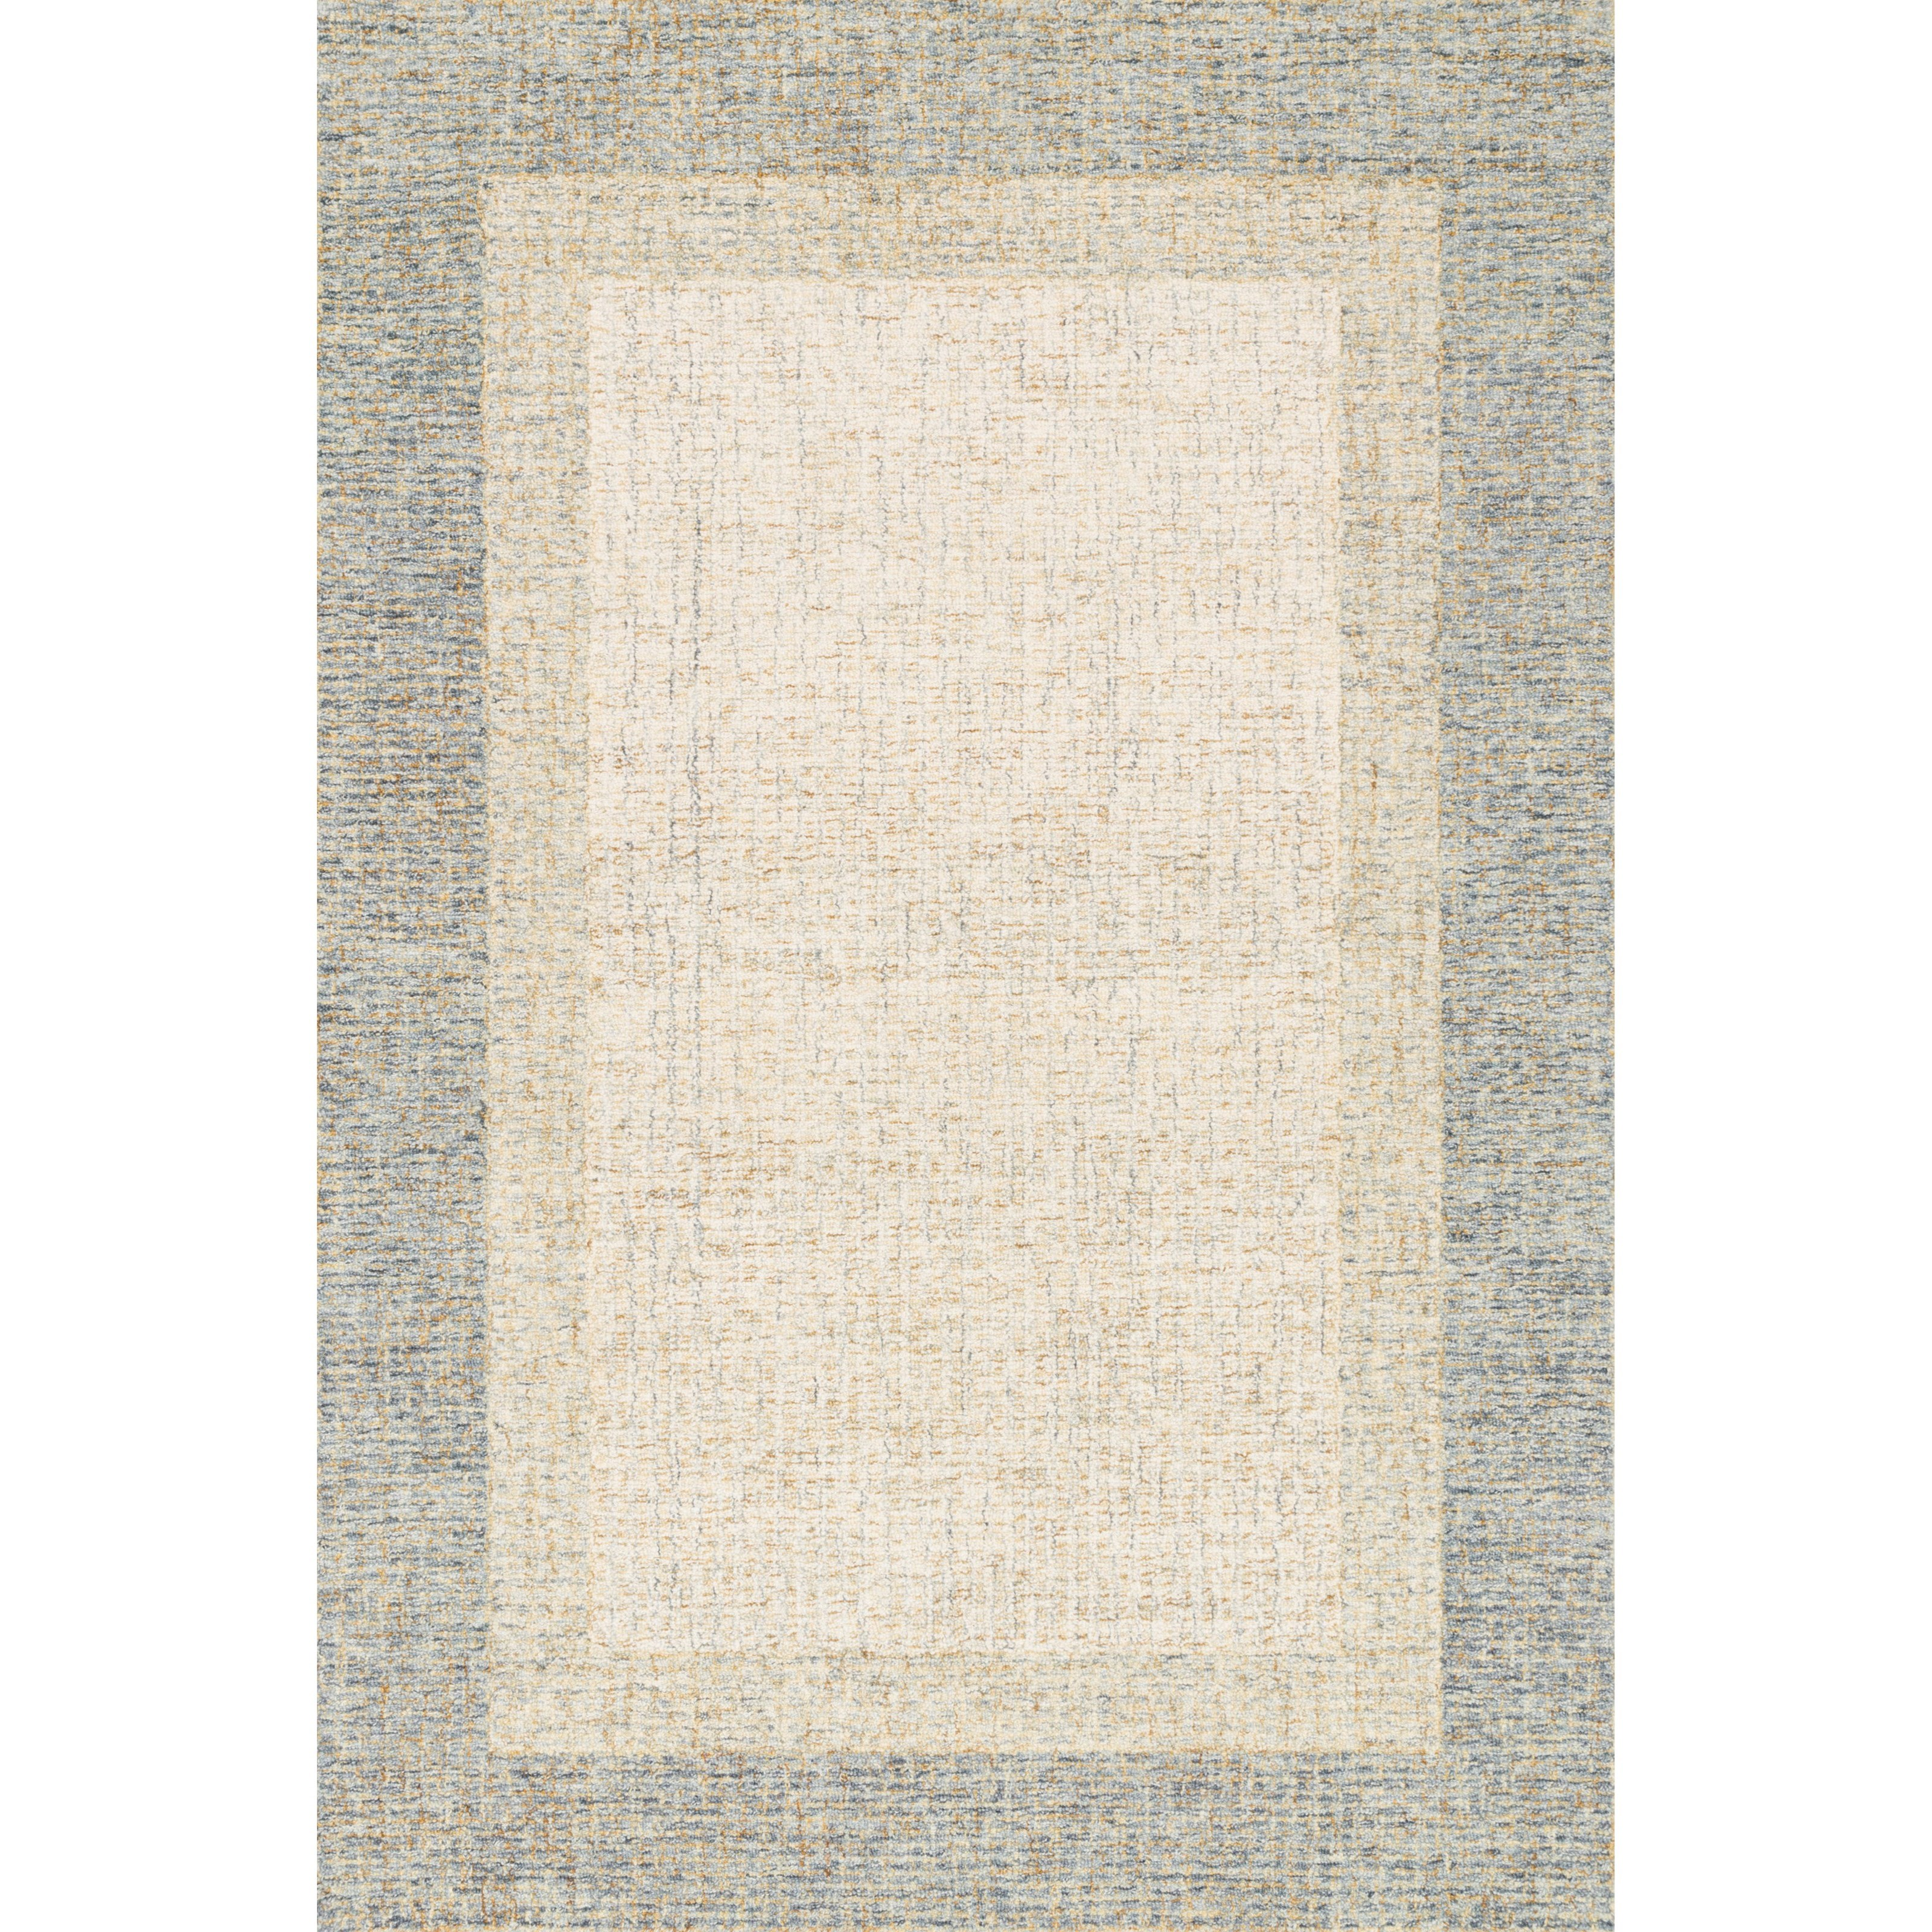 """Rosina 3'6"""" x 5'6"""" Sand Rug by Loloi Rugs at Virginia Furniture Market"""